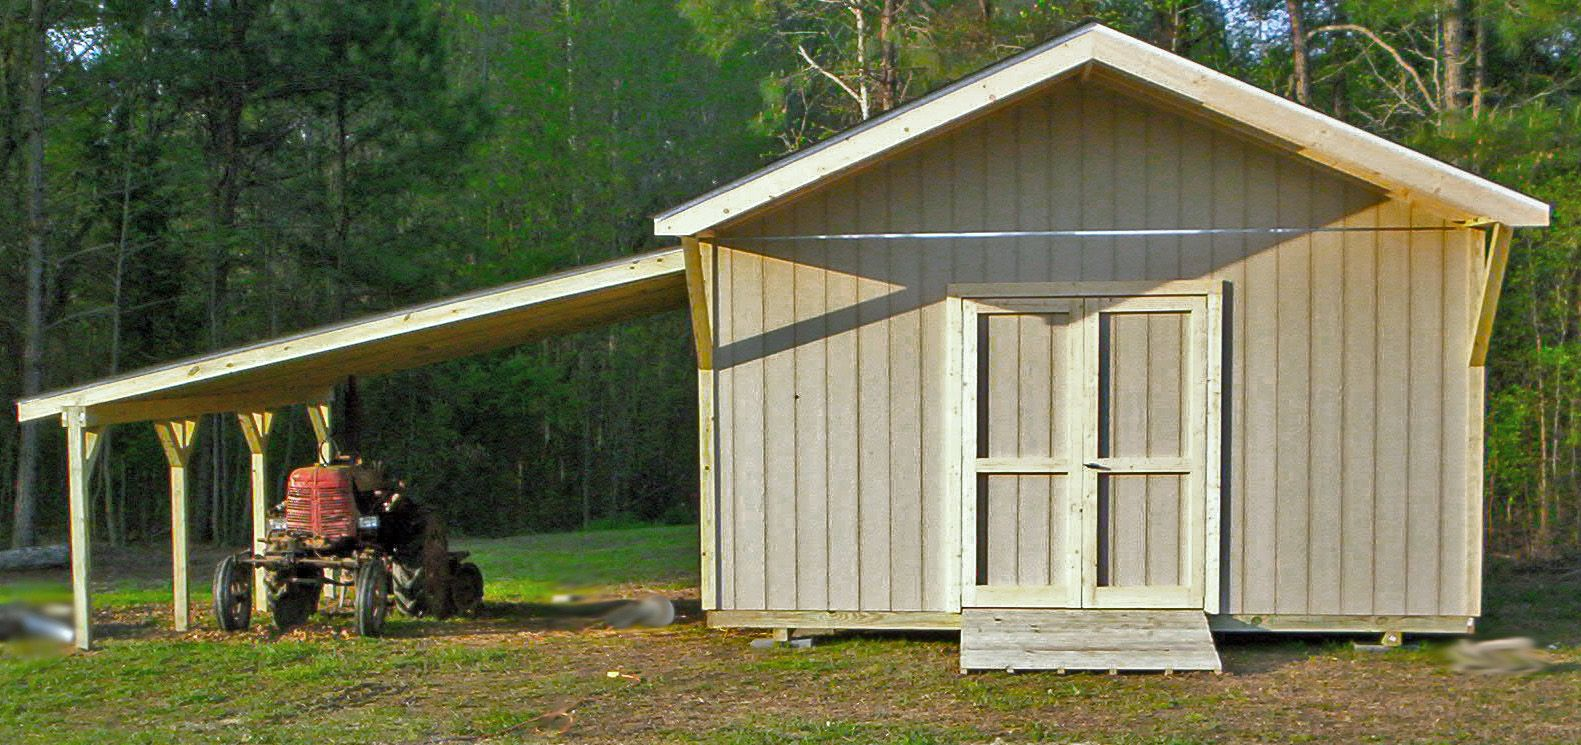 Garden Sheds Wooden storage shed with carport | cardinal buildings: storage buildings